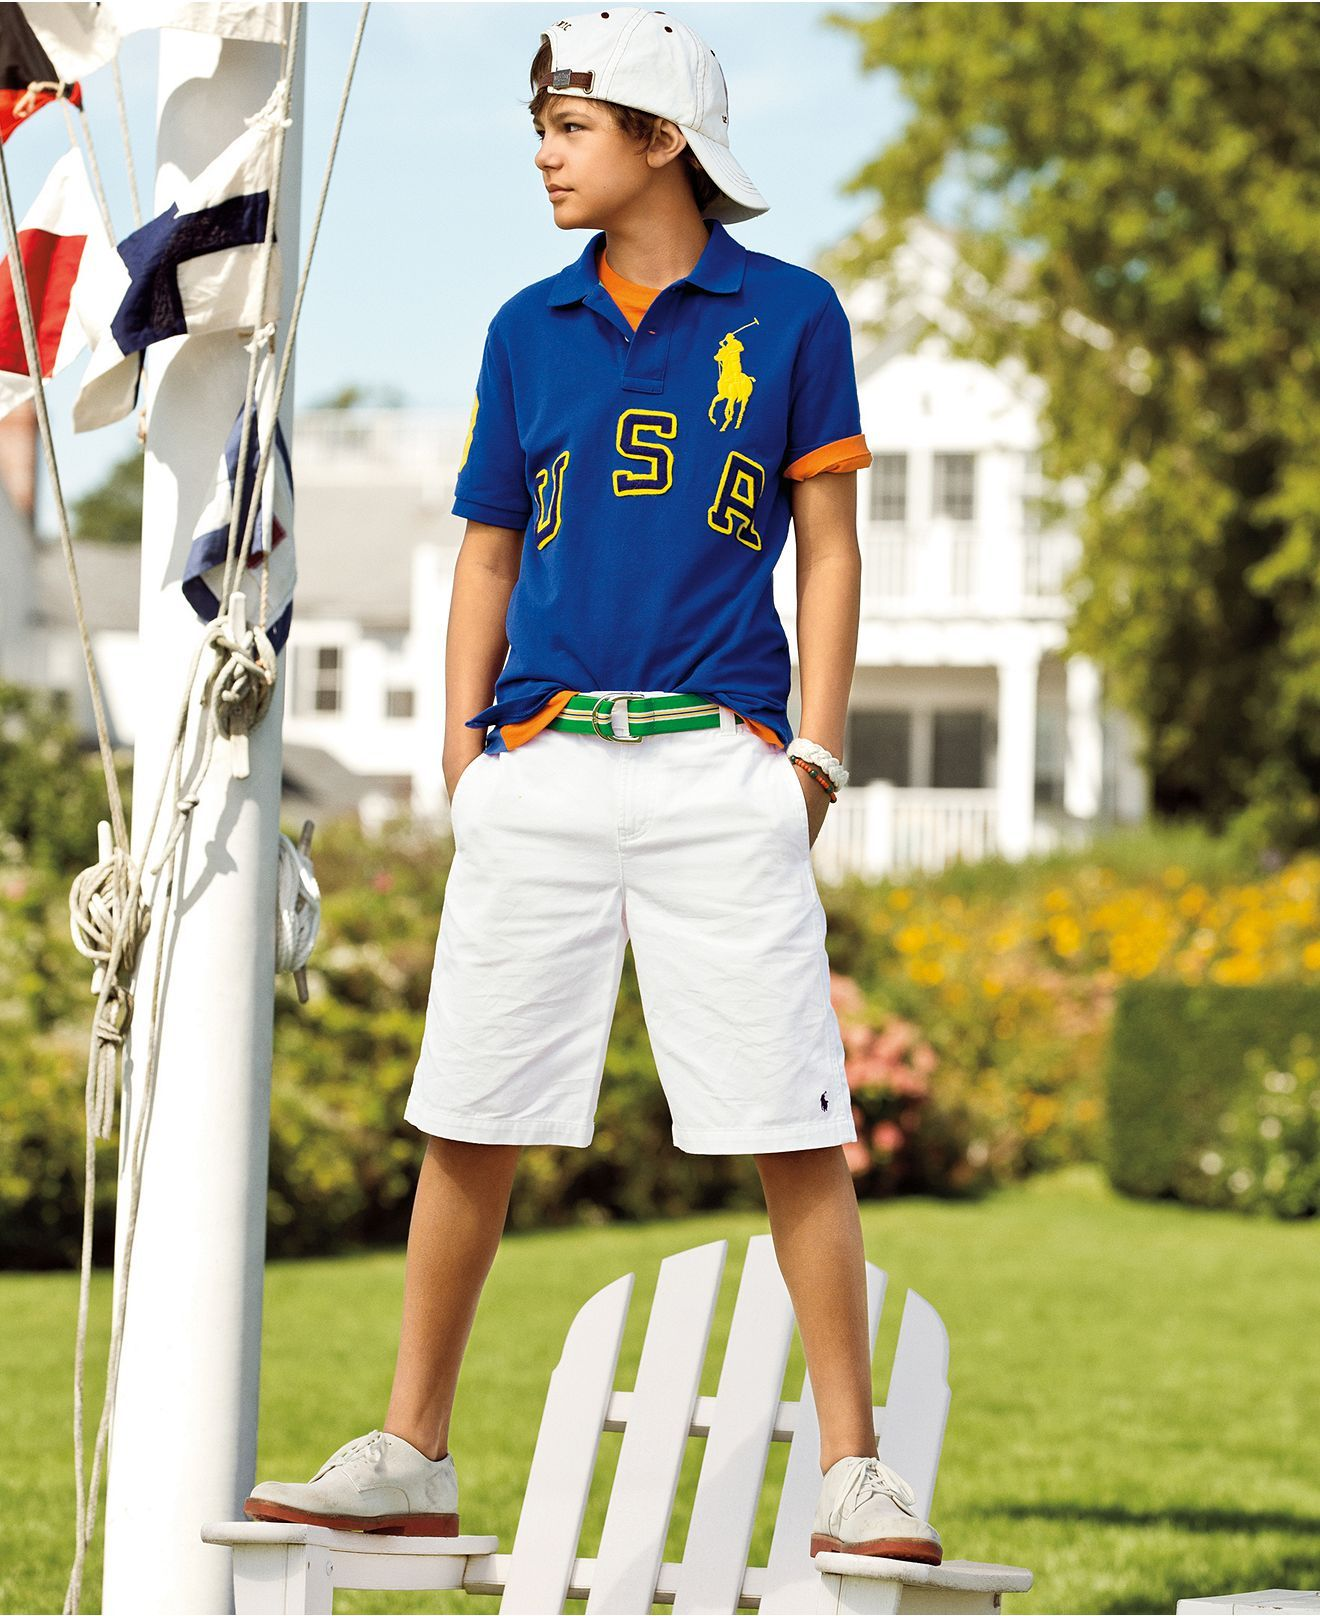 Ralph Lauren Kids Childrenswear. Ralph Lauren boasts an all-American charm and a casual style that's easily recognizable. Take the same fashion that you love for yourself to dress your little ones with Ralph Lauren Kids childrenswear.